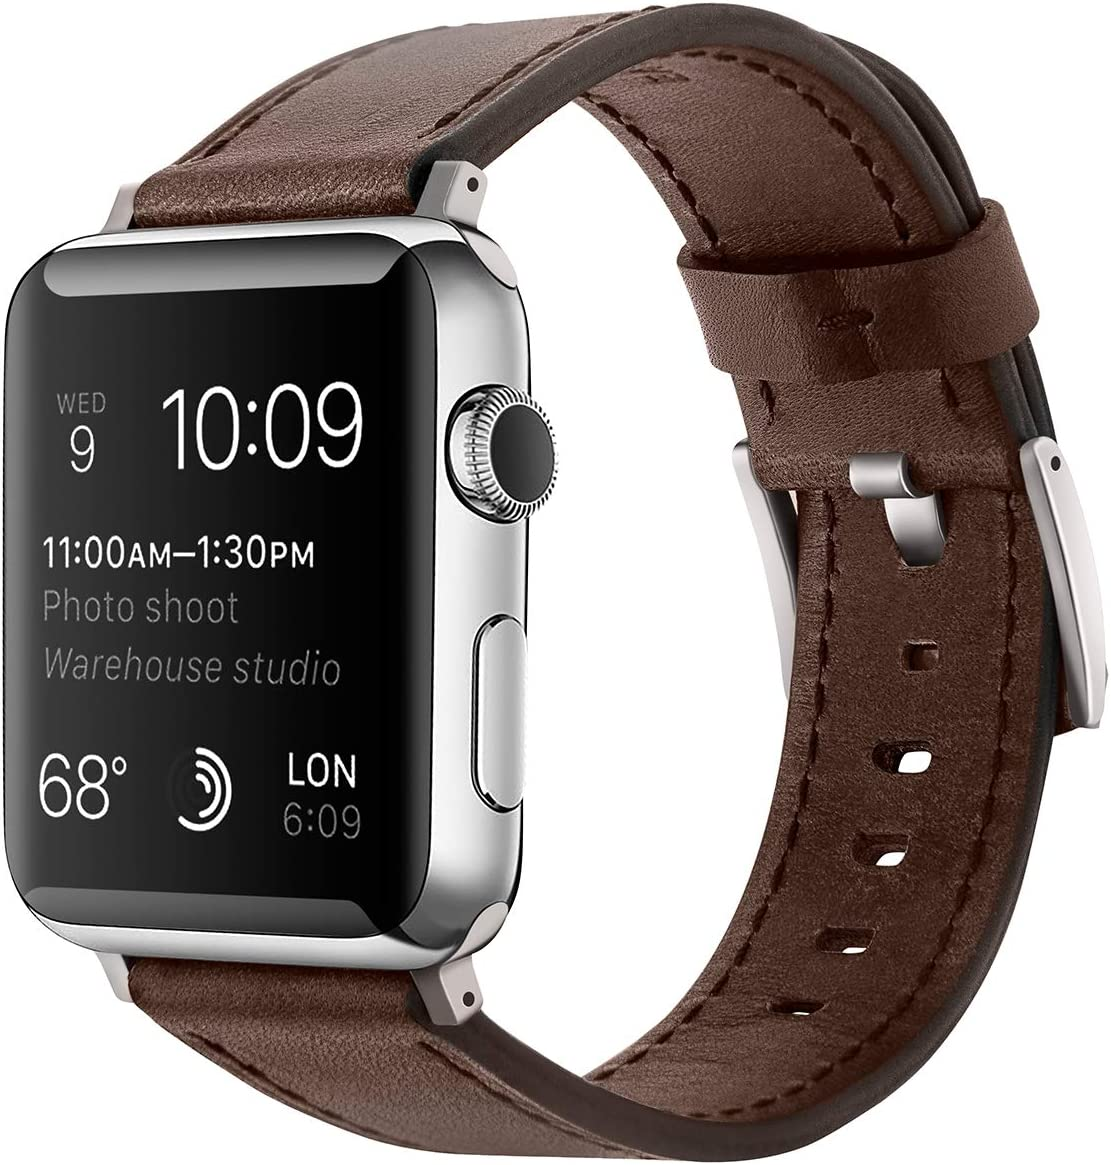 EAVAE Compatible with Apple Watch Bands 42mm 44mm ,Brown Premium Leather iWatch Bands Replacement Strap with Metal Clasp for Apple Watch Series 5 4 3 2 1